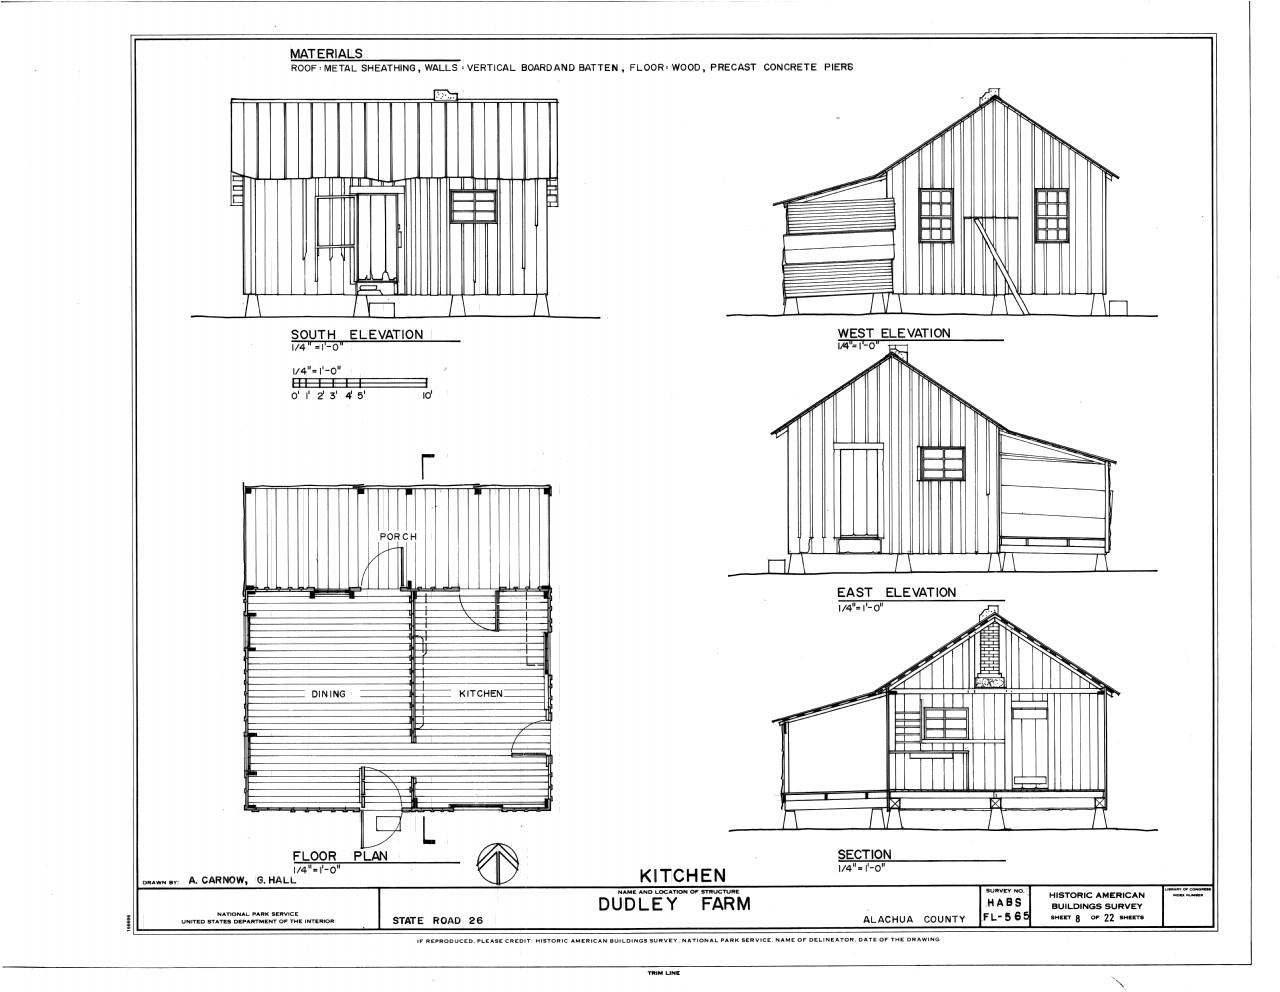 Home Plan and Elevation File Kitchen Elevations Floor Plan and Section Dudley